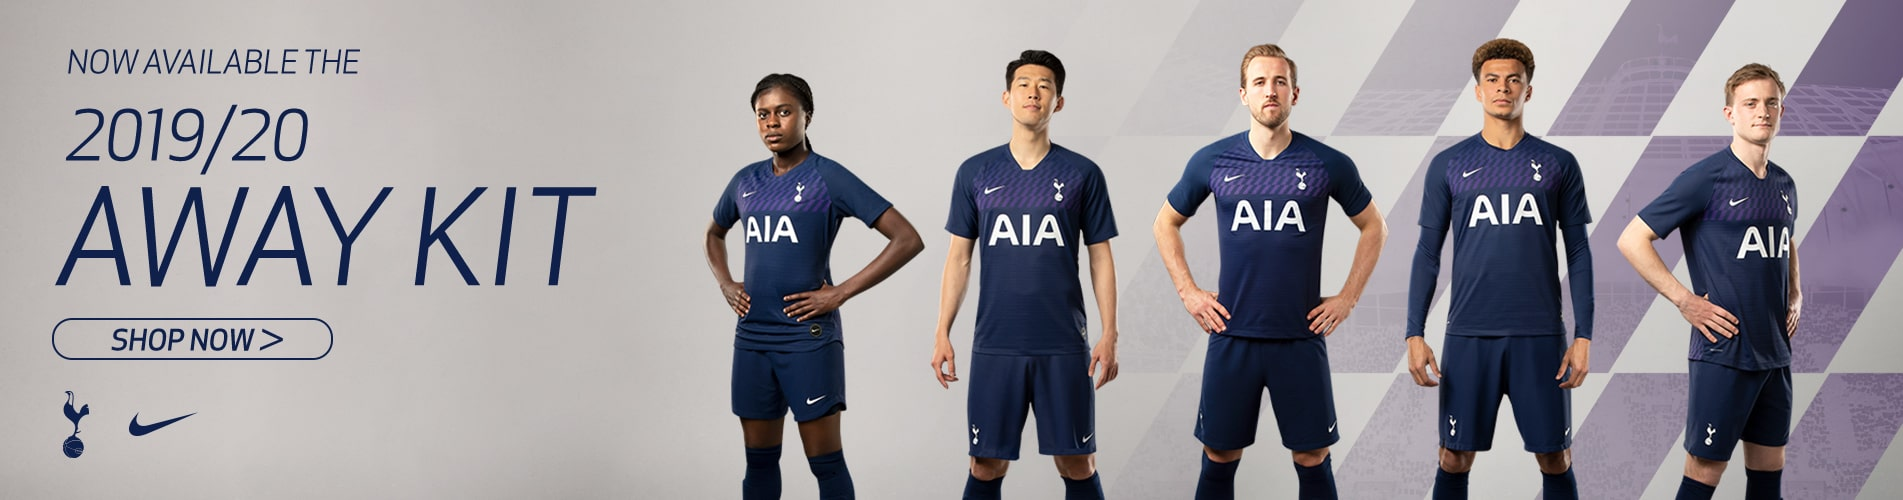 Spurs Kit 2019/20 OUT NOW! | Official Spurs Shop | Free Delivery